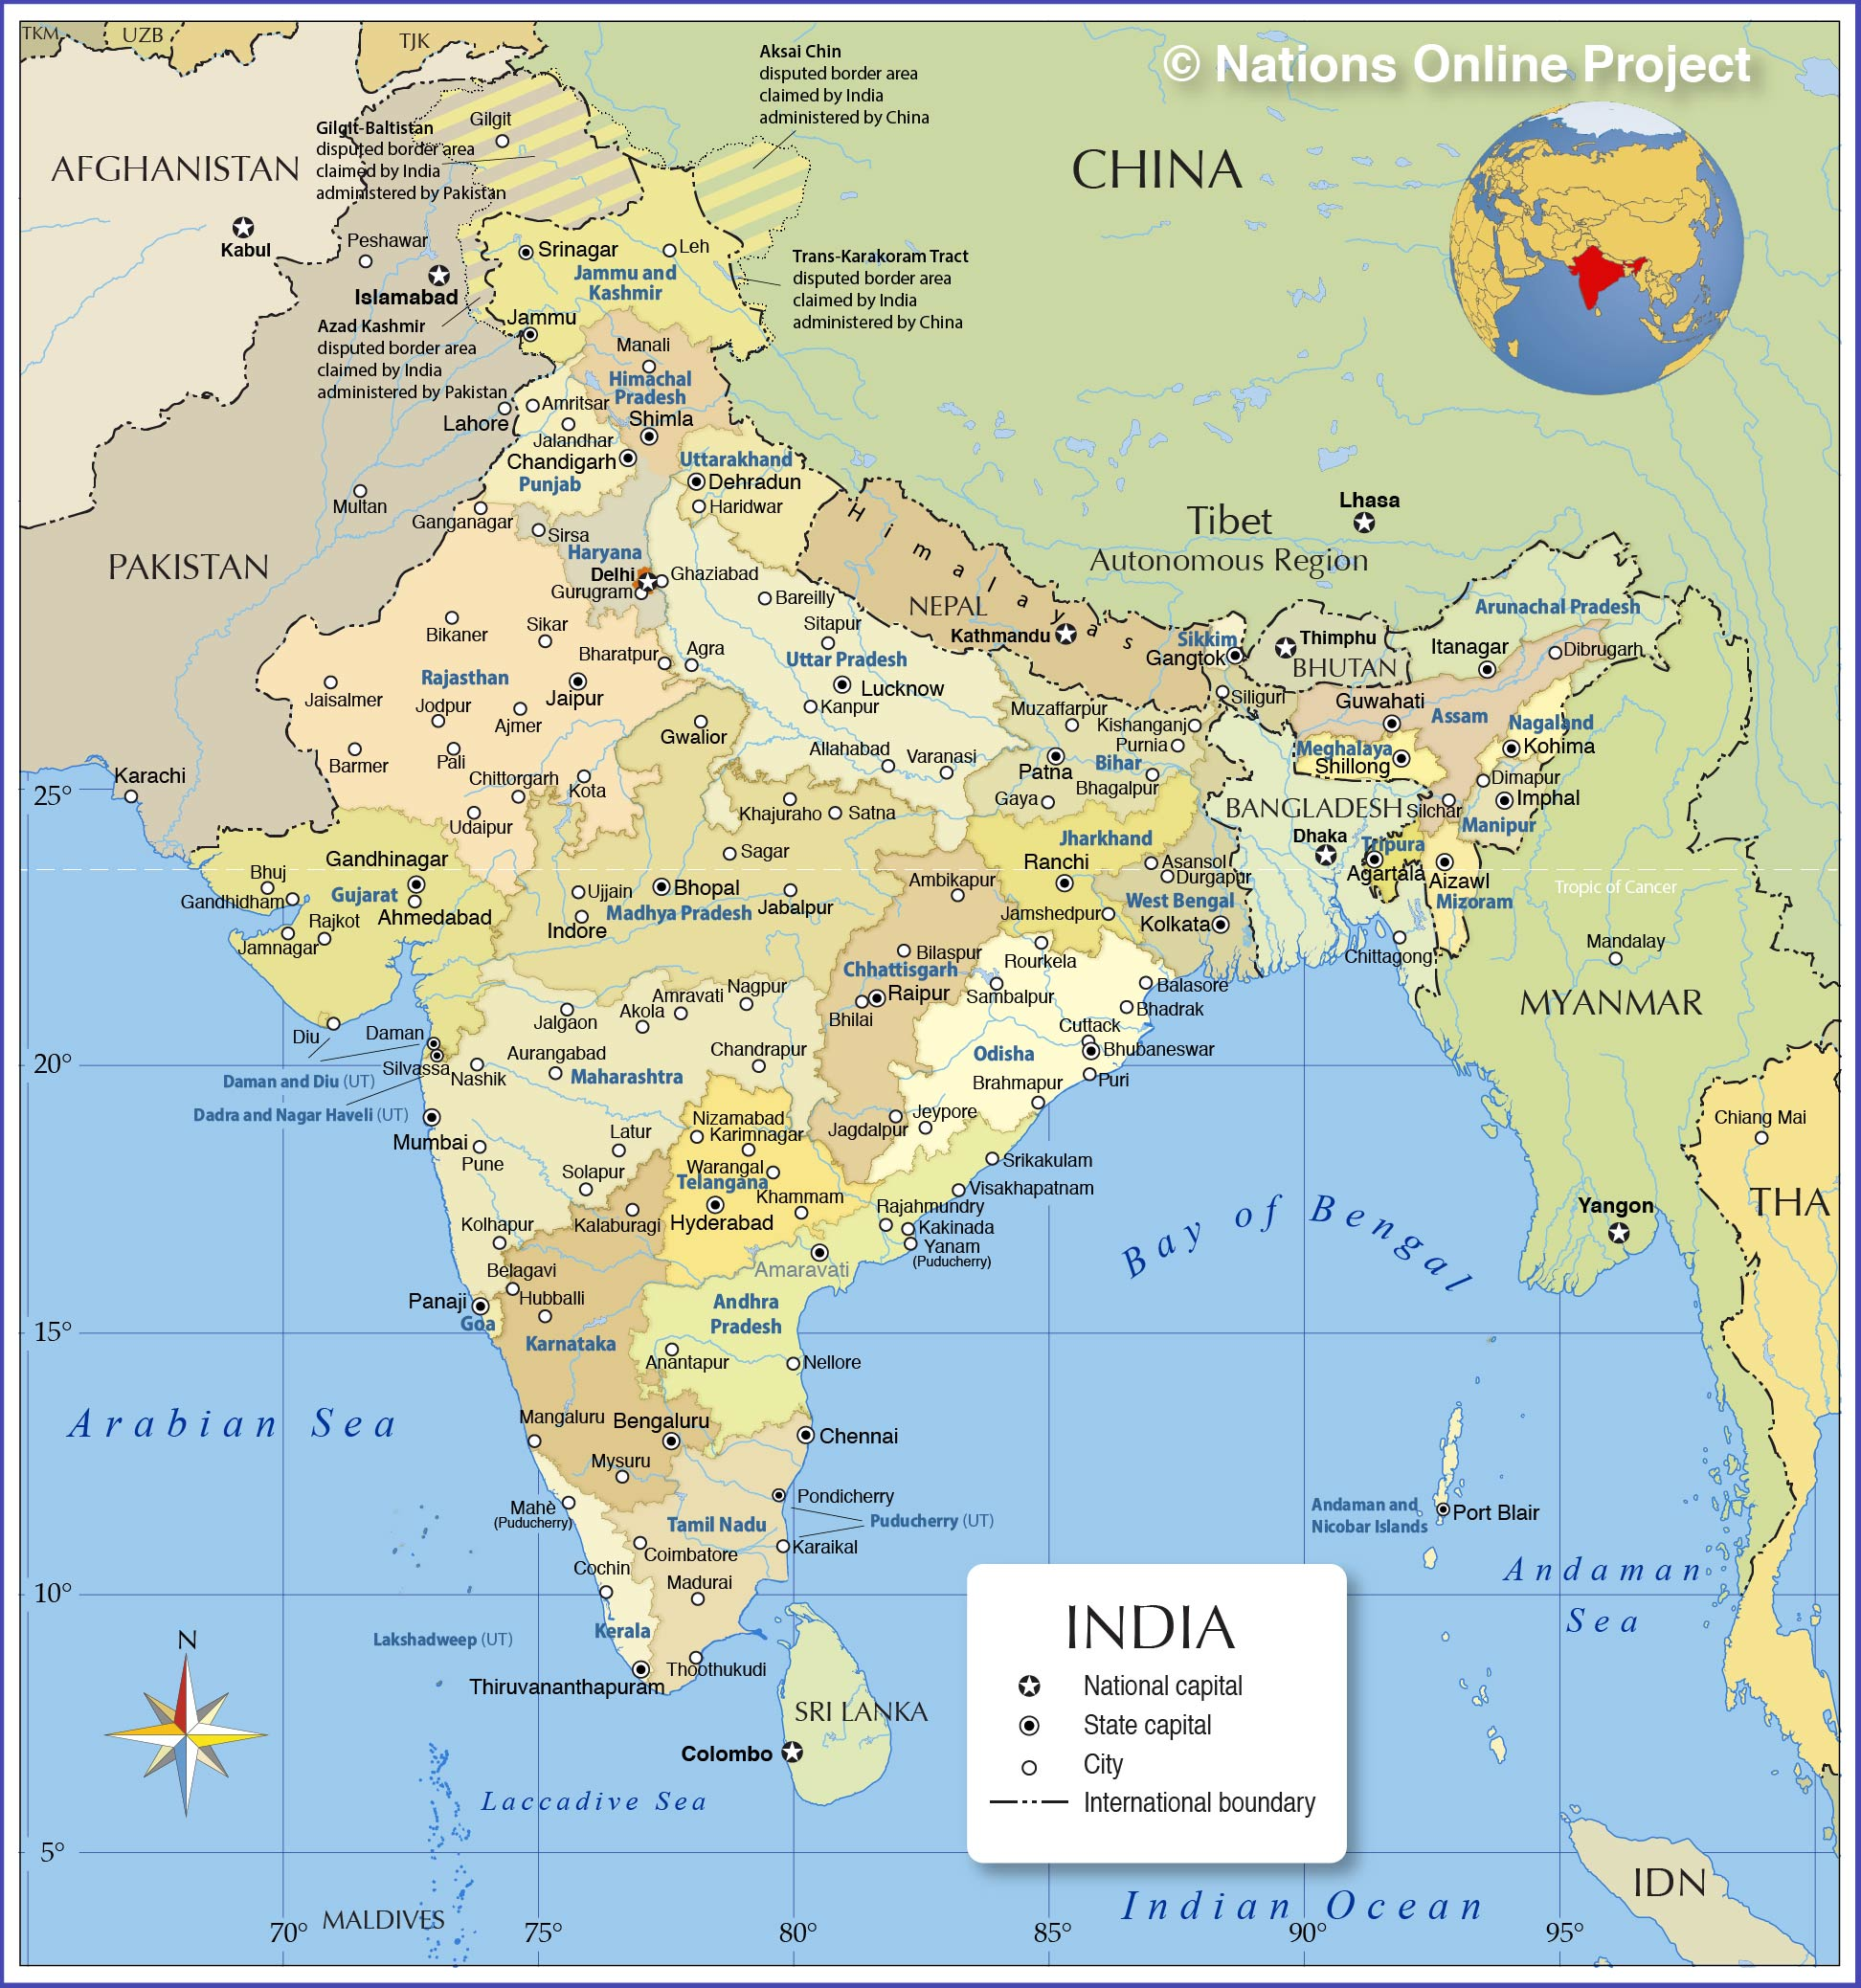 india all state map image hd Political Map Of India S States Nations Online Project india all state map image hd